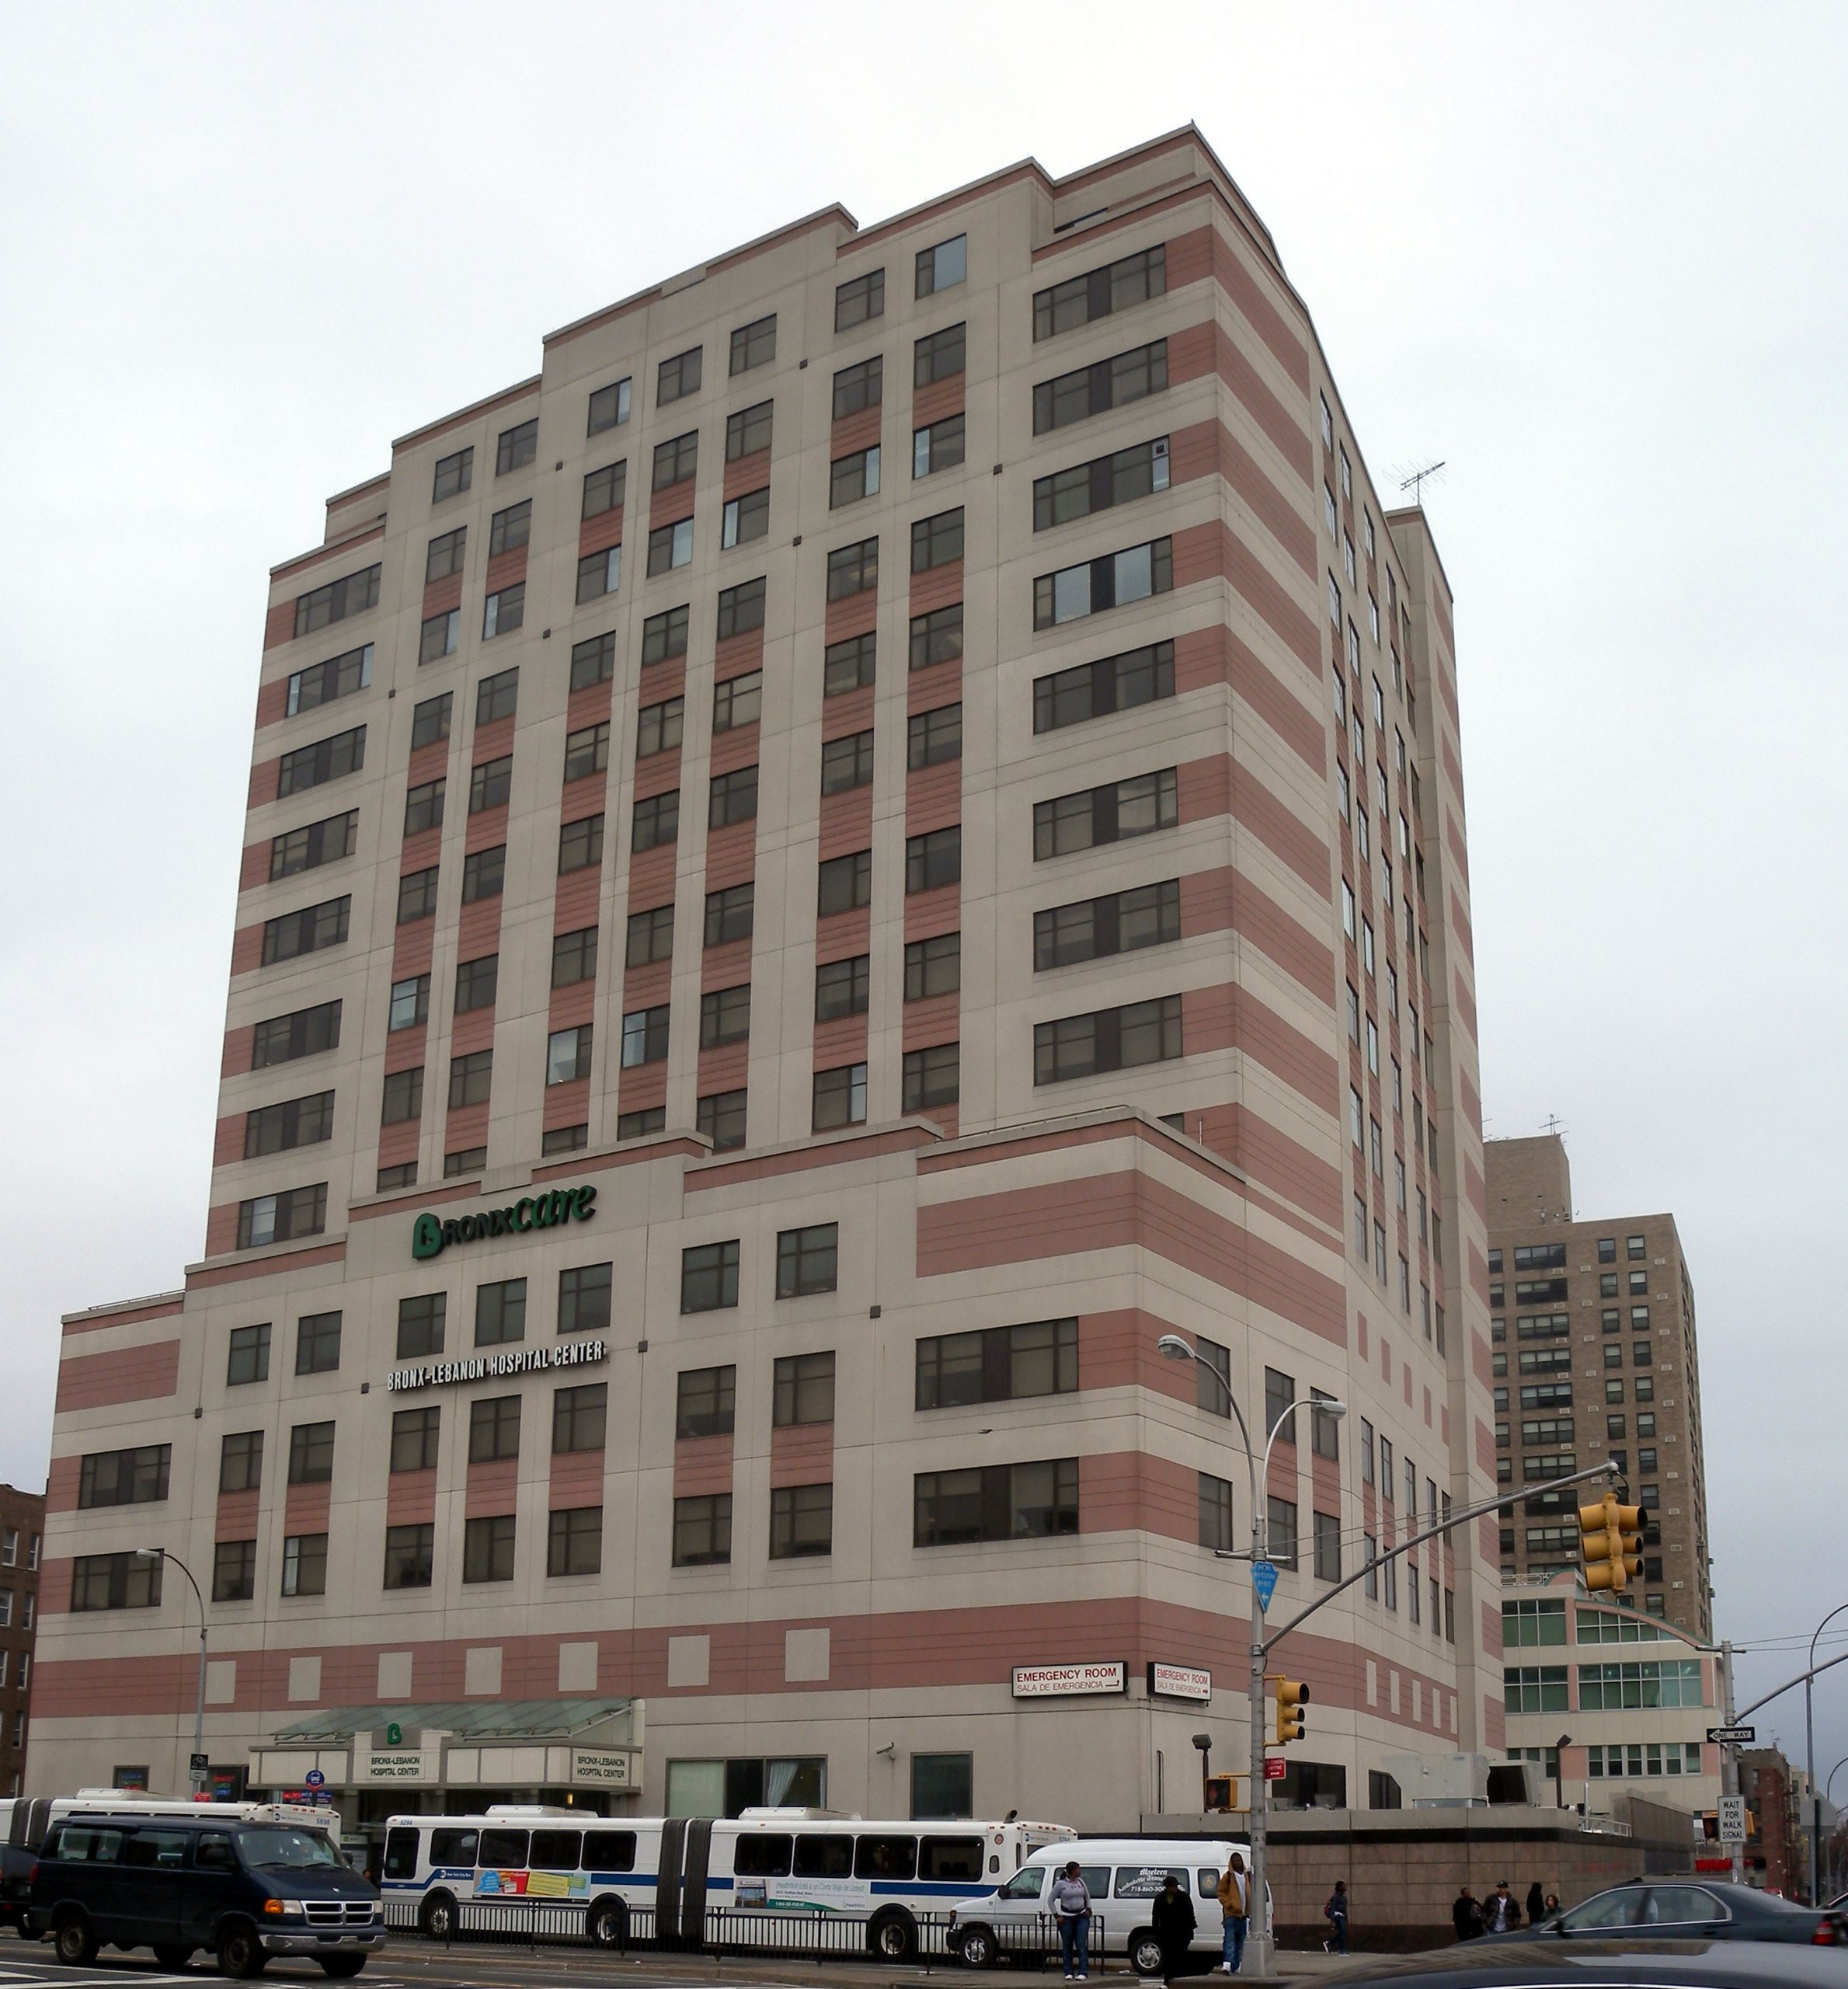 BronxCare Health System Corporate Office